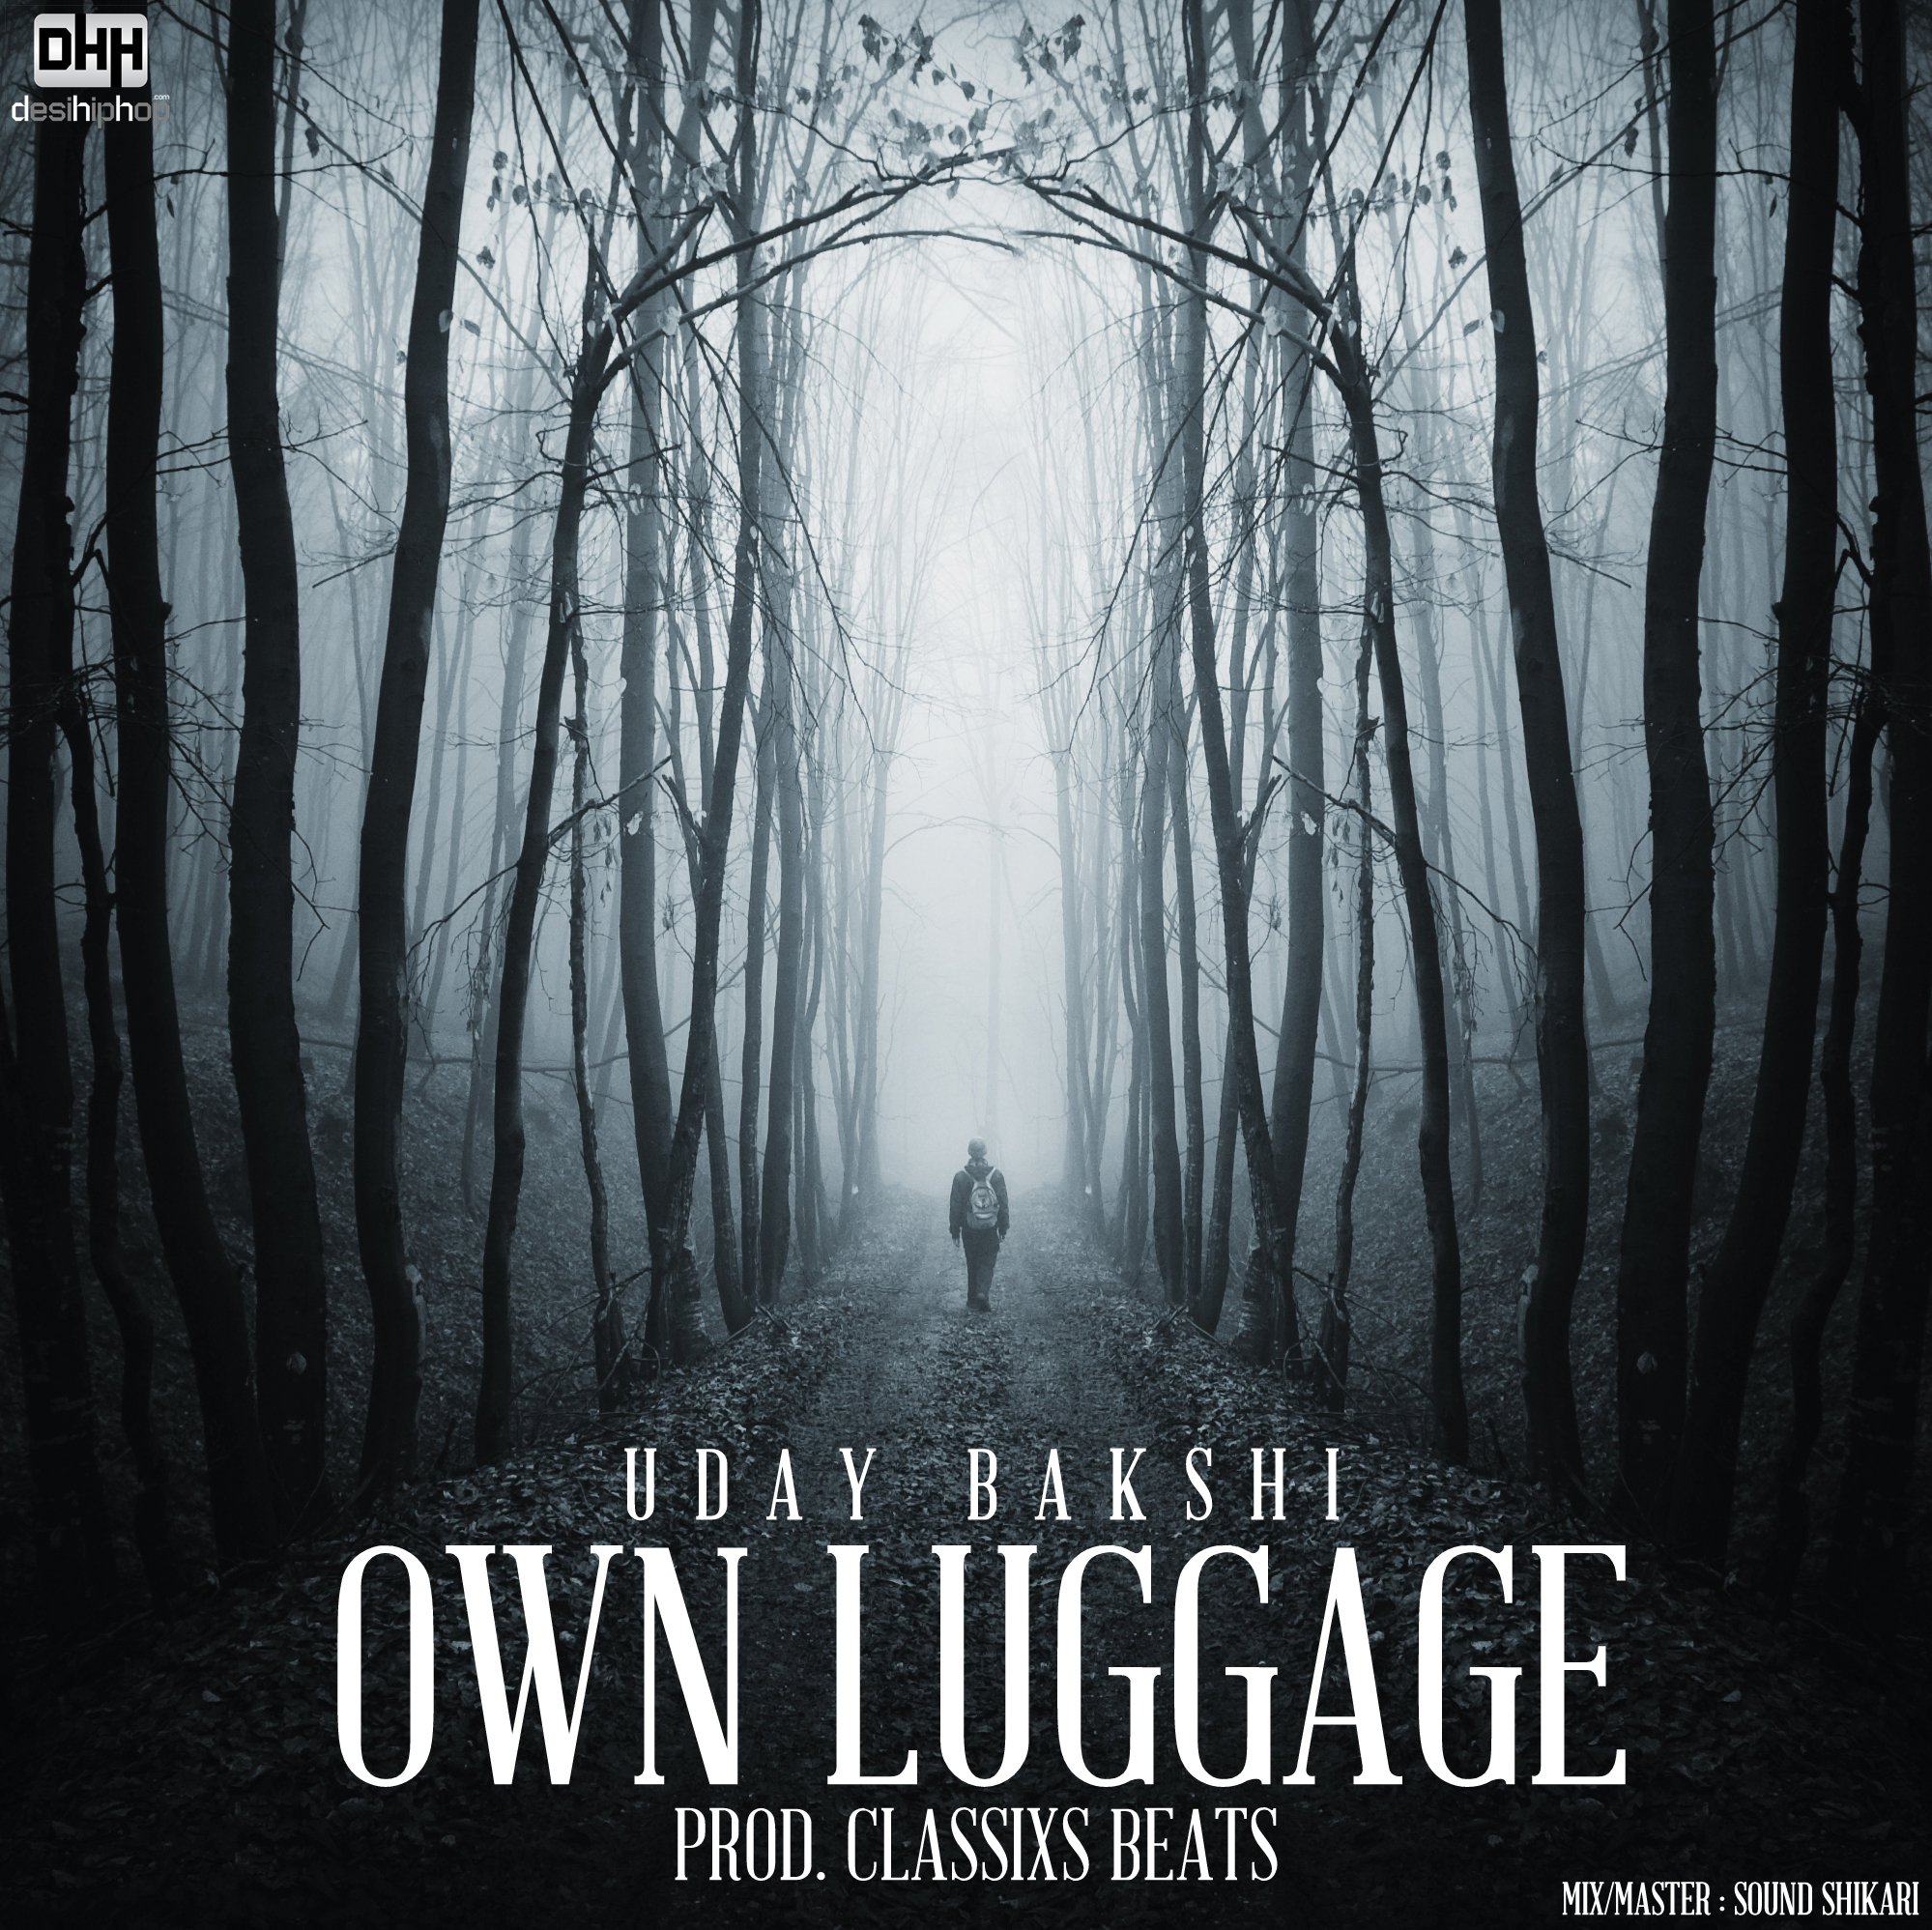 Own Luggage uday bakshi classixs beats sound shikari